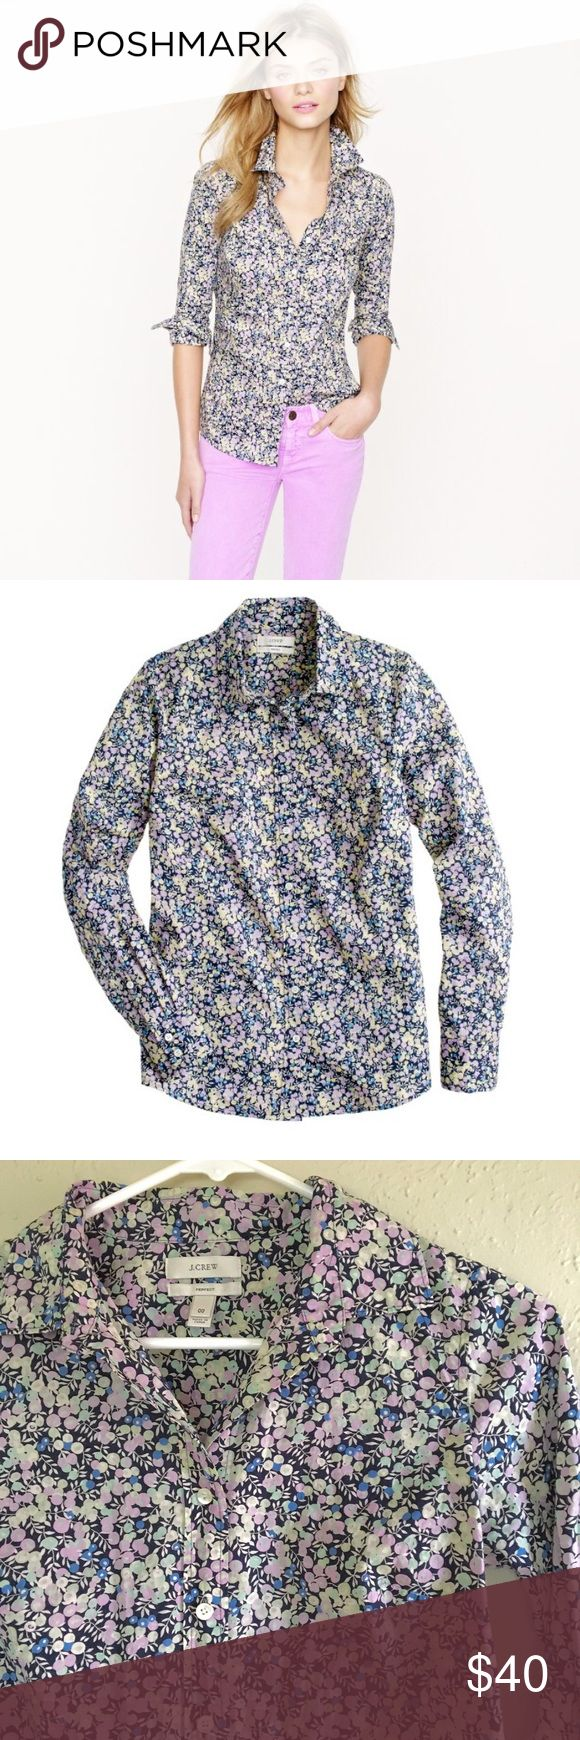 """J. Crew Liberty Perfect Shirt in Wiltshire J. Crew long sleeve Button Down in a signature floral print. This wear-anywhere blouse features impeccable tailoring with precisely placed bust darts and back princess darts for a slimming, waist-defining fit that's a bit more feminine.   Chest: approx 17.5"""" Length: approx 25"""" 100% cotton  Reasonable offers considered Bundle and save! J. Crew Tops"""